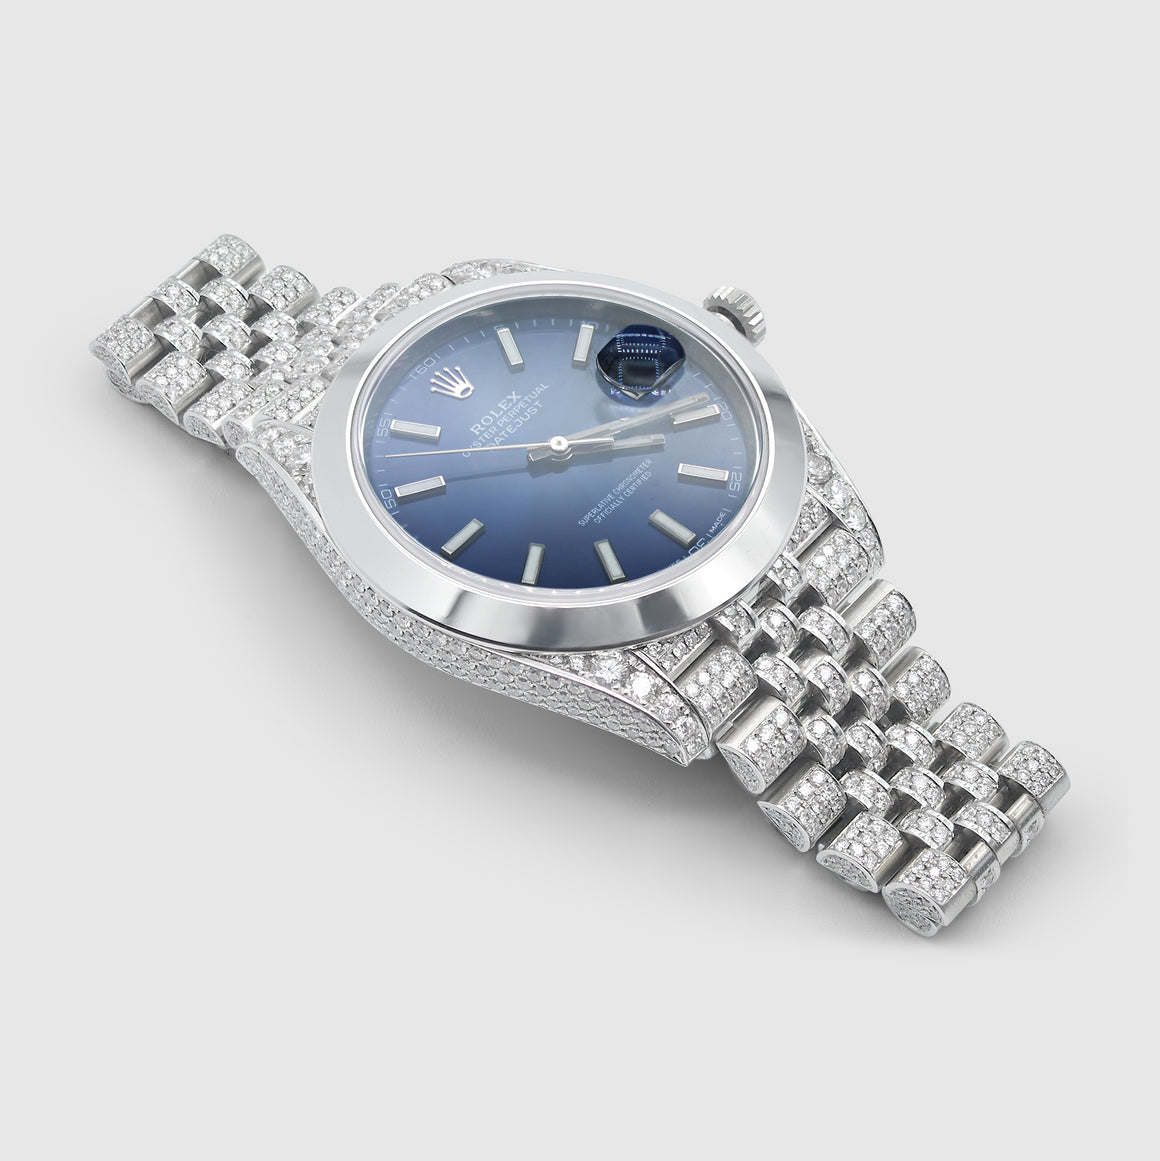 Iced out Diamond Rolex DateJust 41mm Stainless Steel Blue Dial Watch